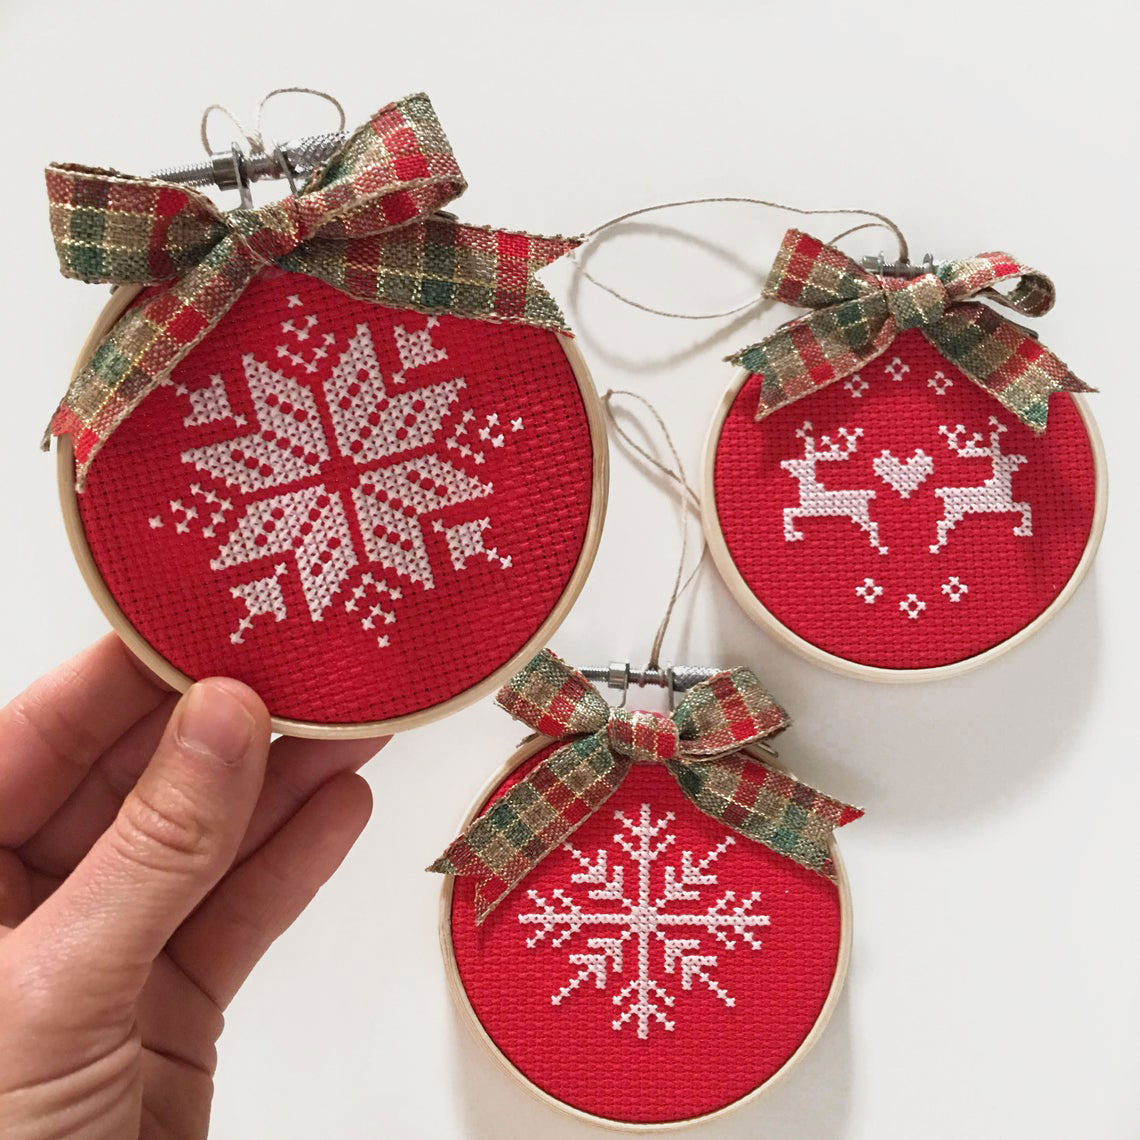 Cross stitch ornaments by The Nesting Needle, Etsy photo